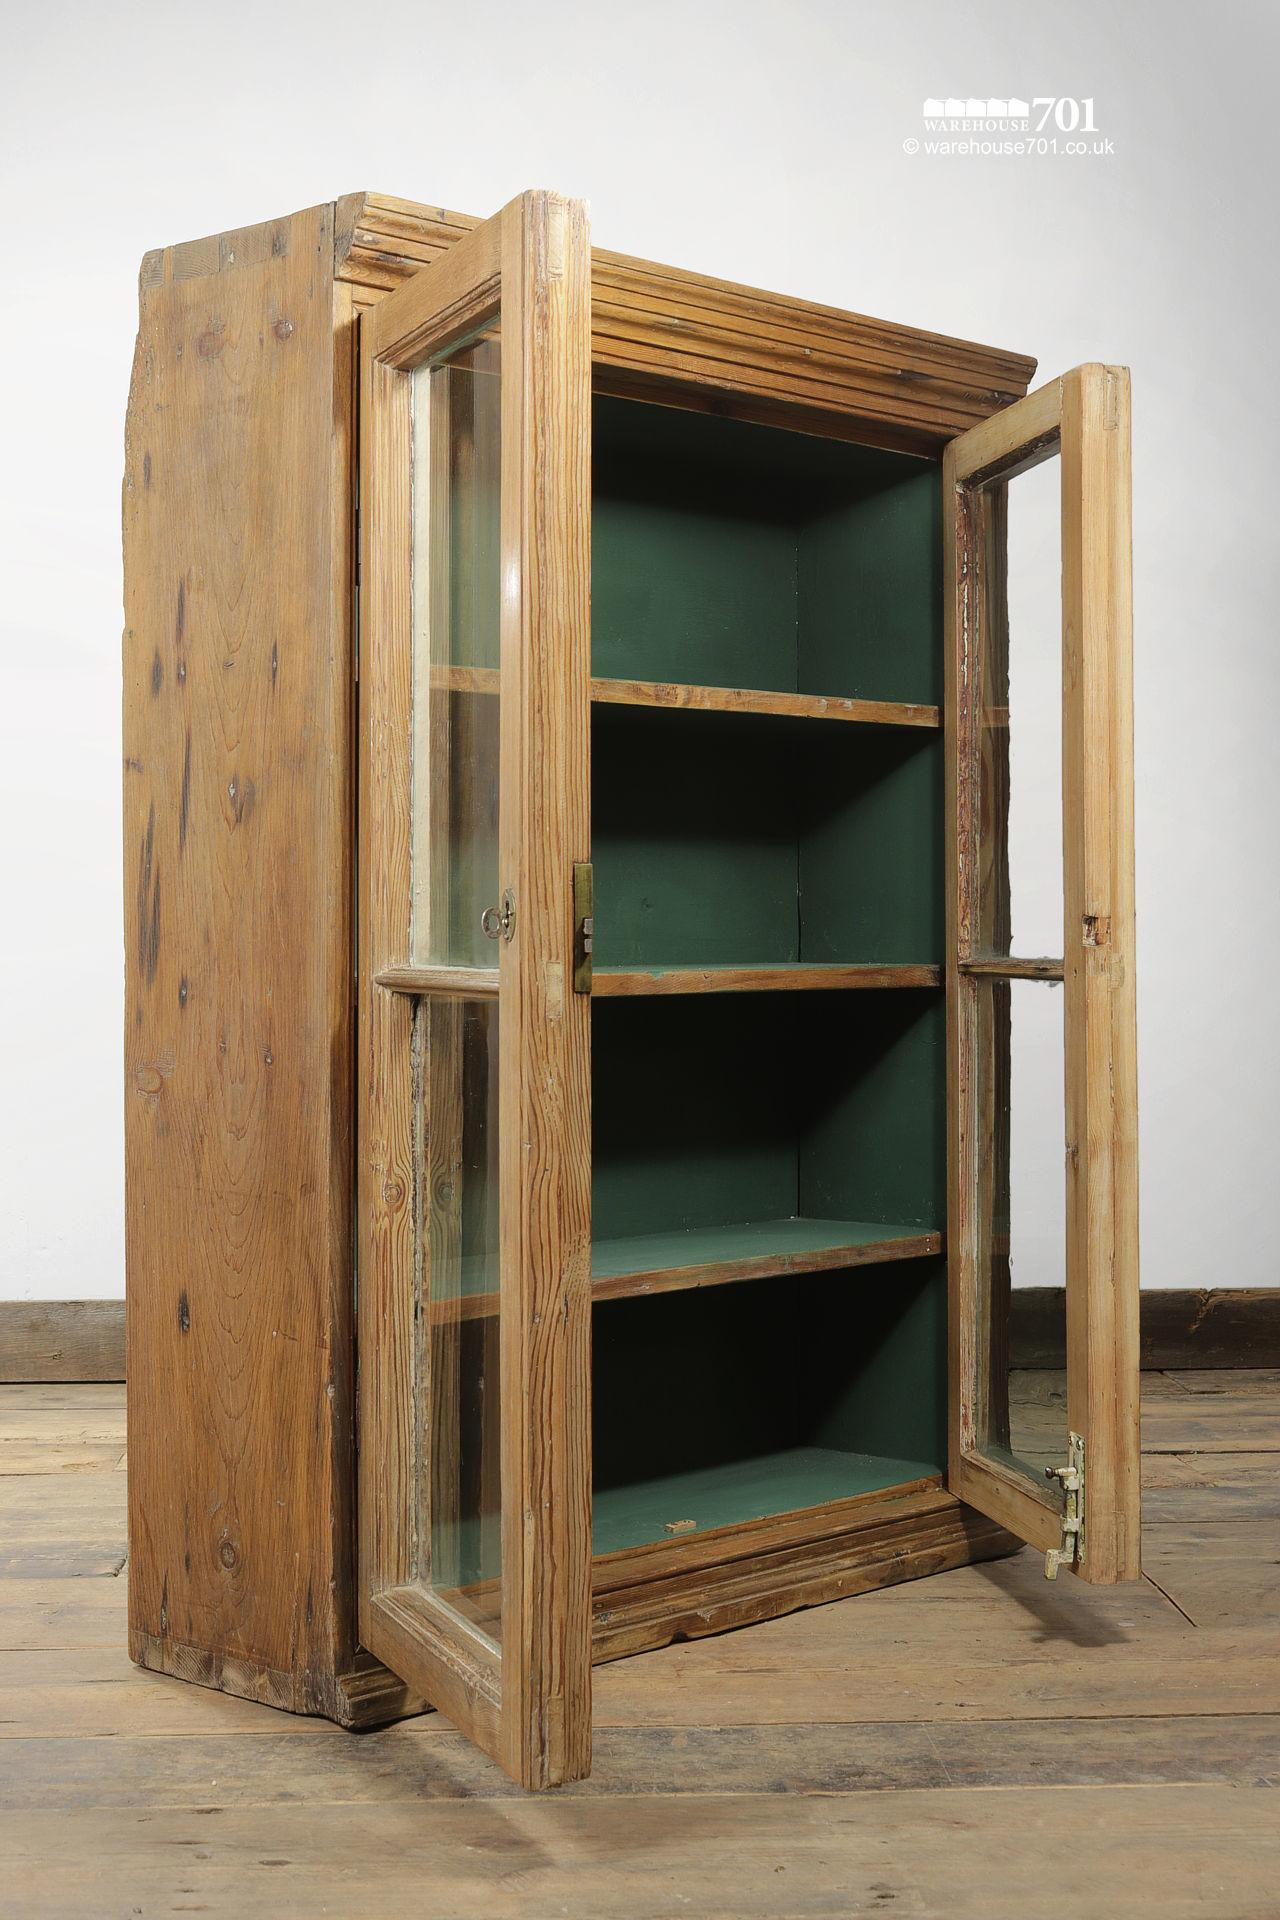 Green Interior Antique Pine Glazed Display Cabinet #2